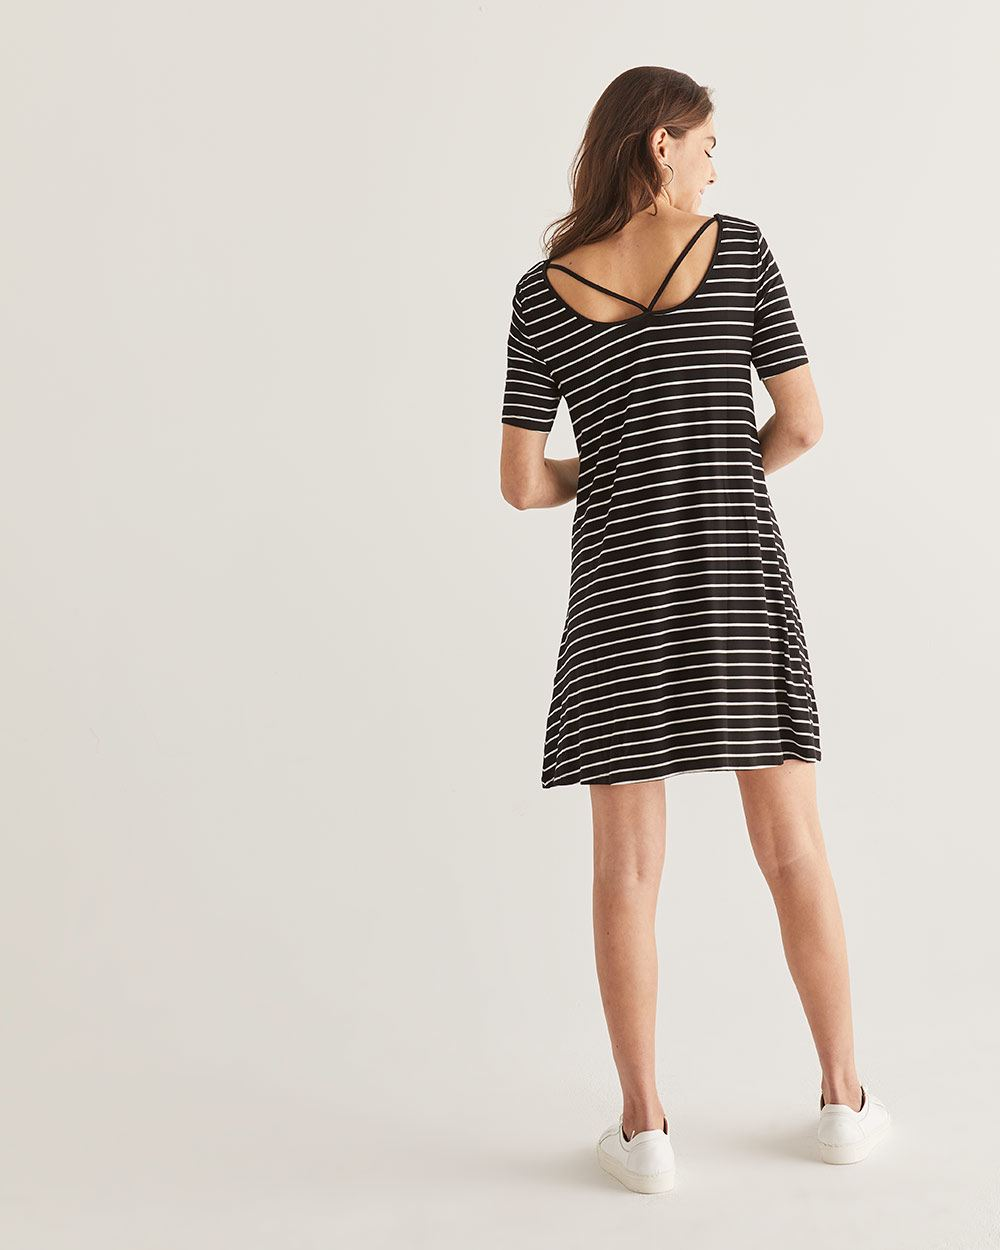 Reversible Stripe Swing Dress - Petite